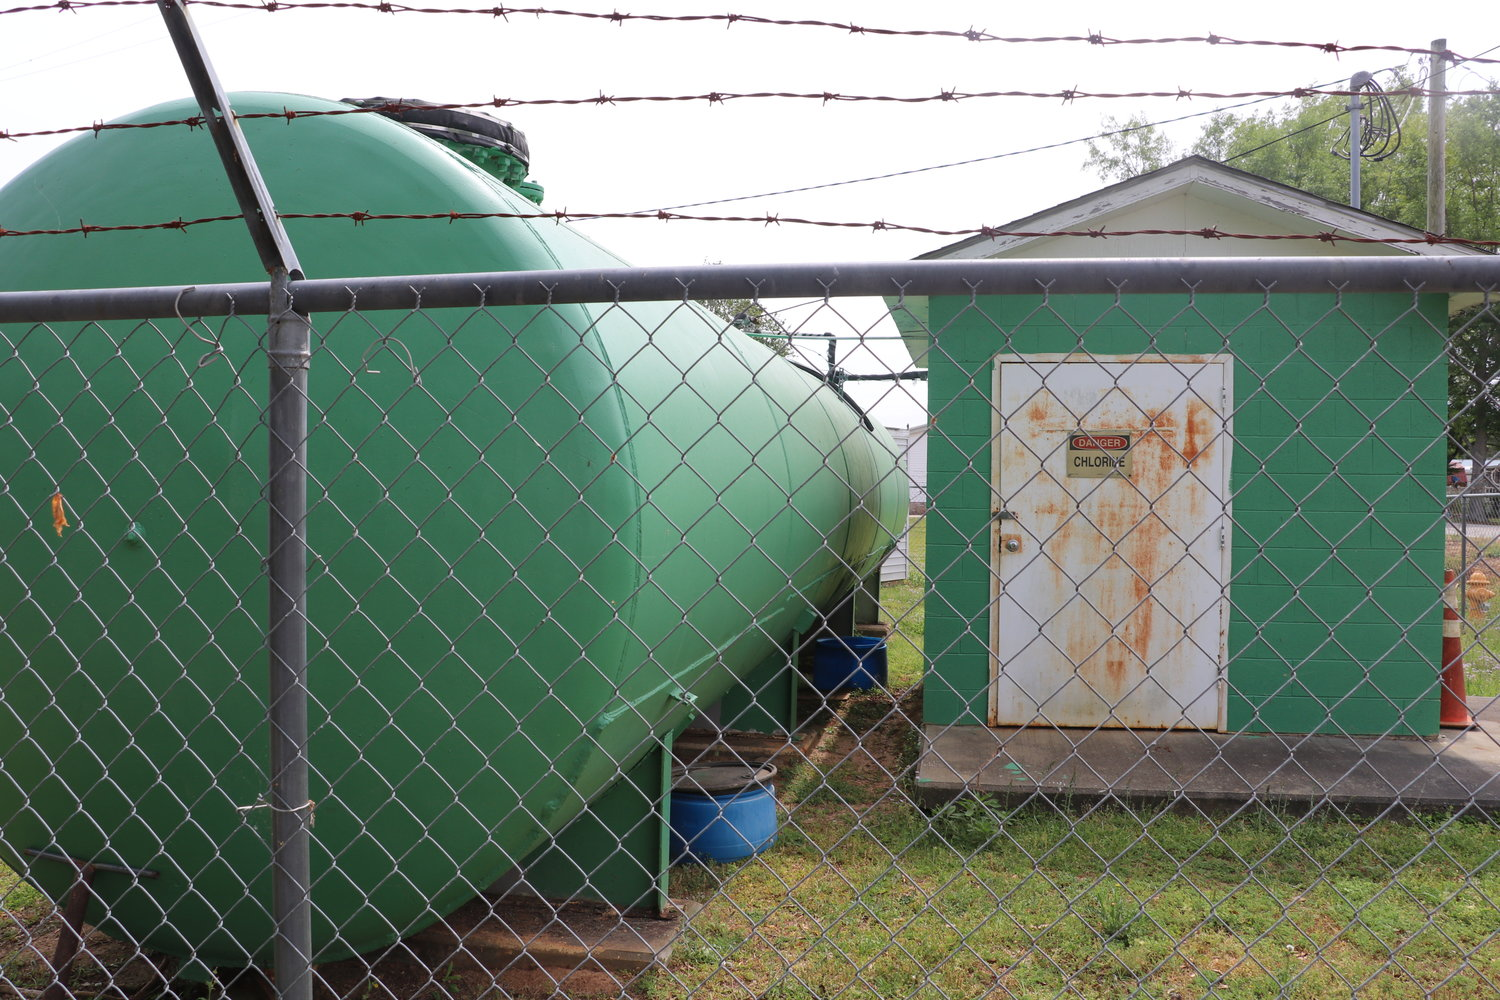 The Town of Summerton-ran water system for Goat Island, which appears to be visibly damaged.